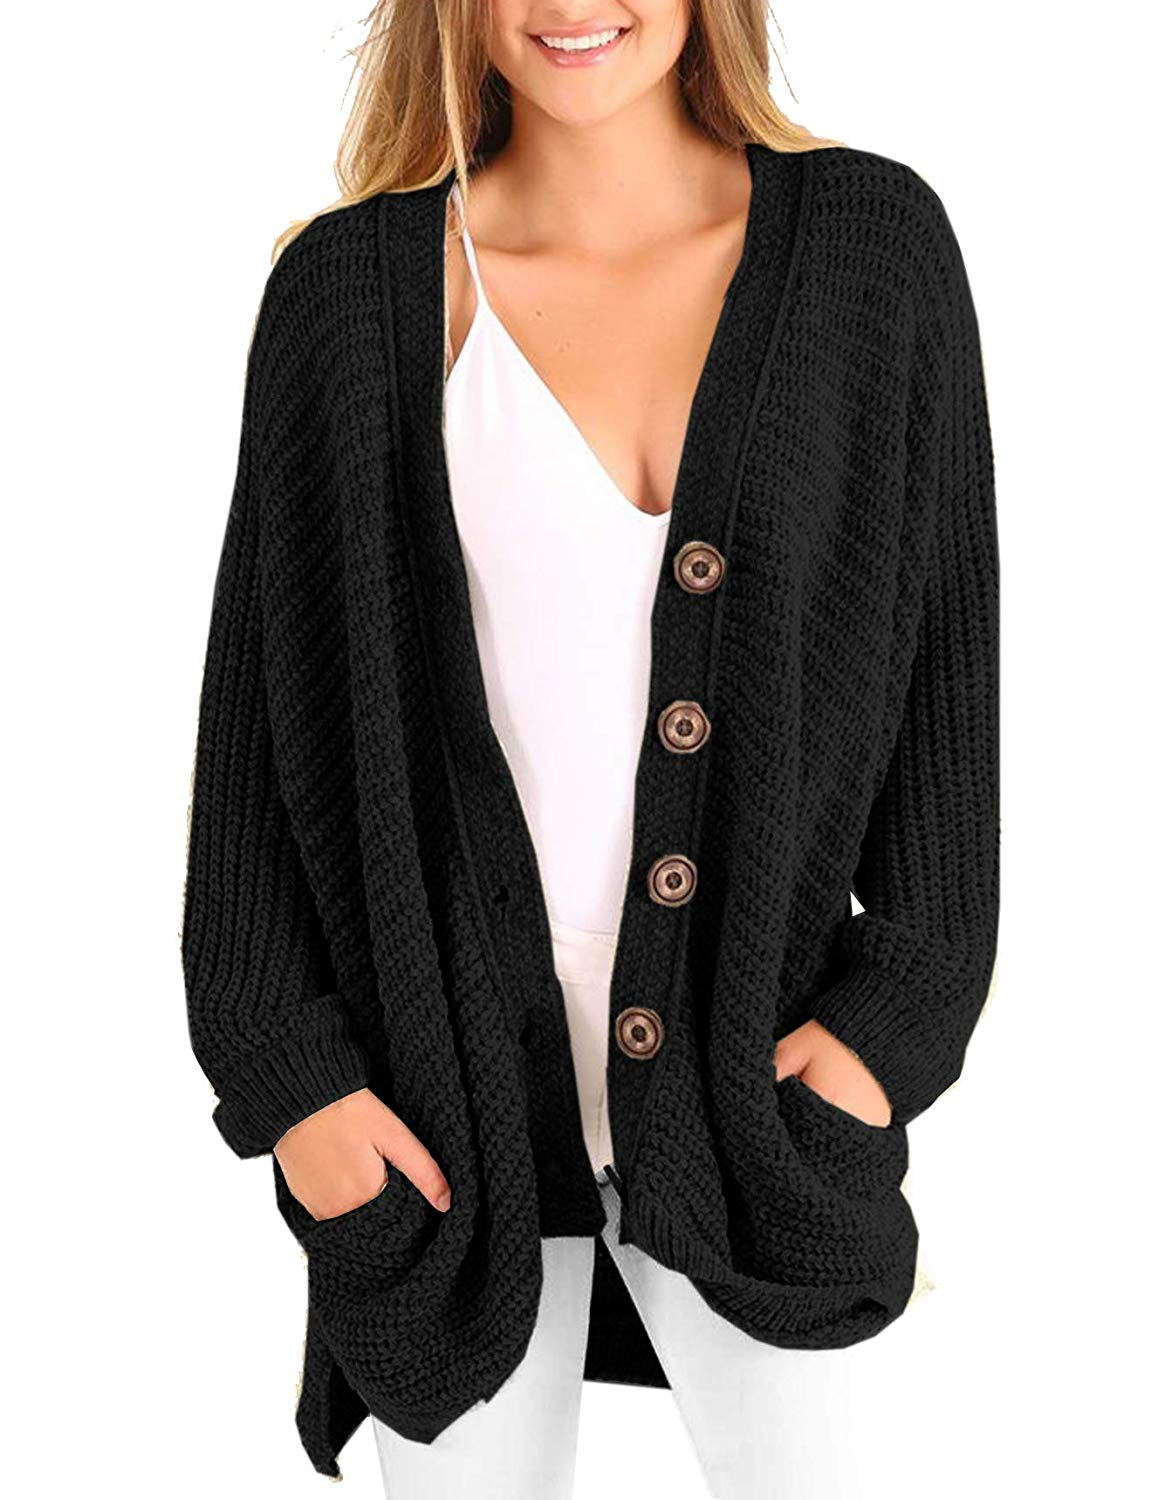 71f581fe101 Get Quotations · YSkkt Womens Plus Size Cardigan Long Cable Knit Chunky  Oversized Fall Button Sweaters with Pockets